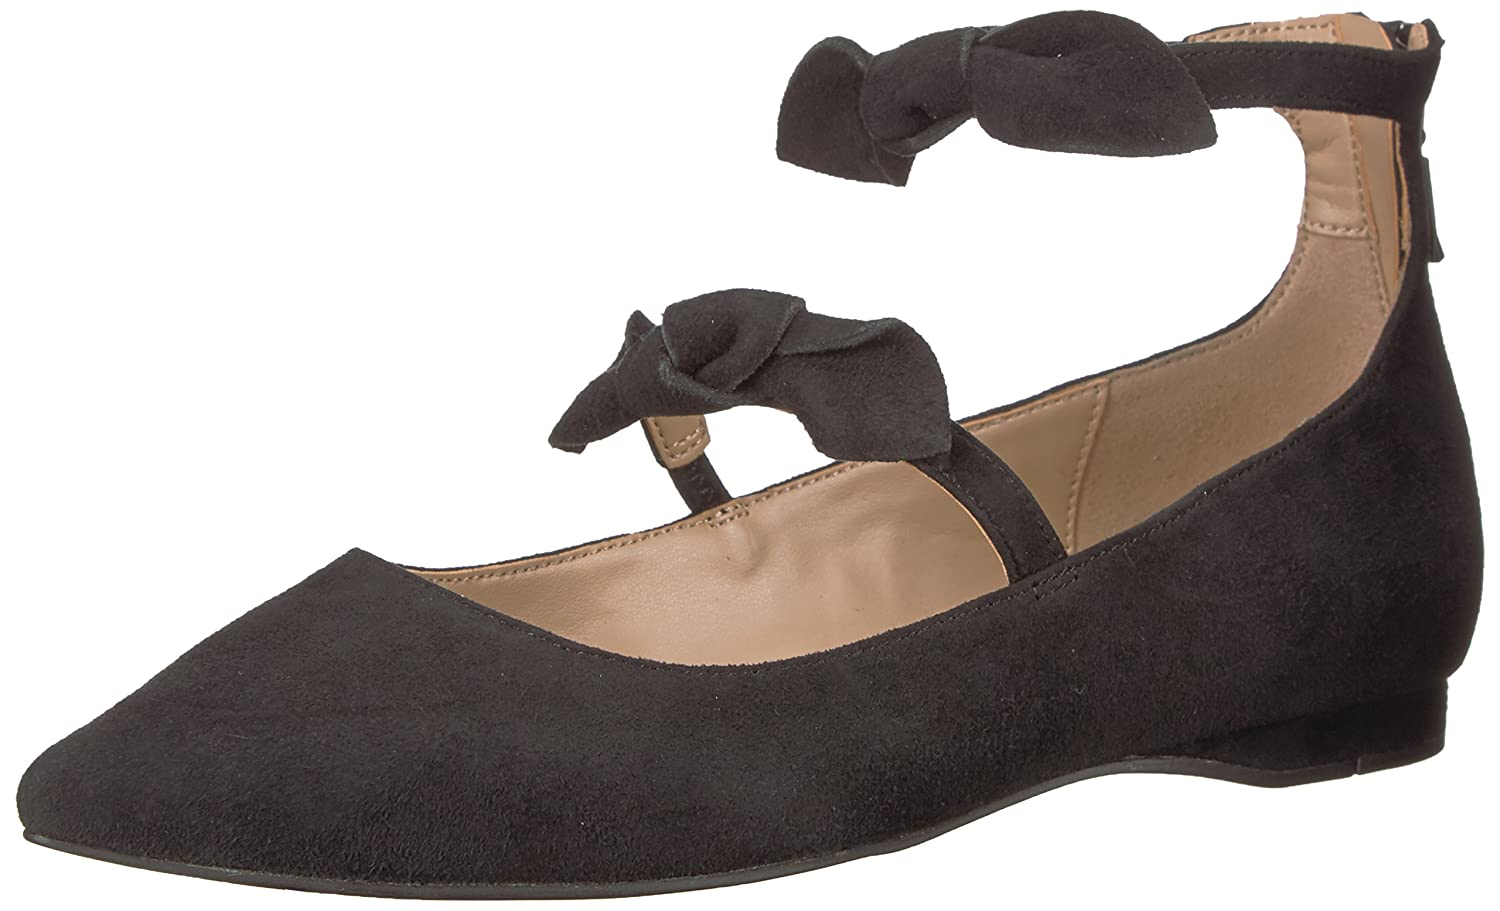 The Fix Women's Emilia Double Bow Pointed-Toe Flat B074K3KXLB 7.5 B(M) US|Black Suede